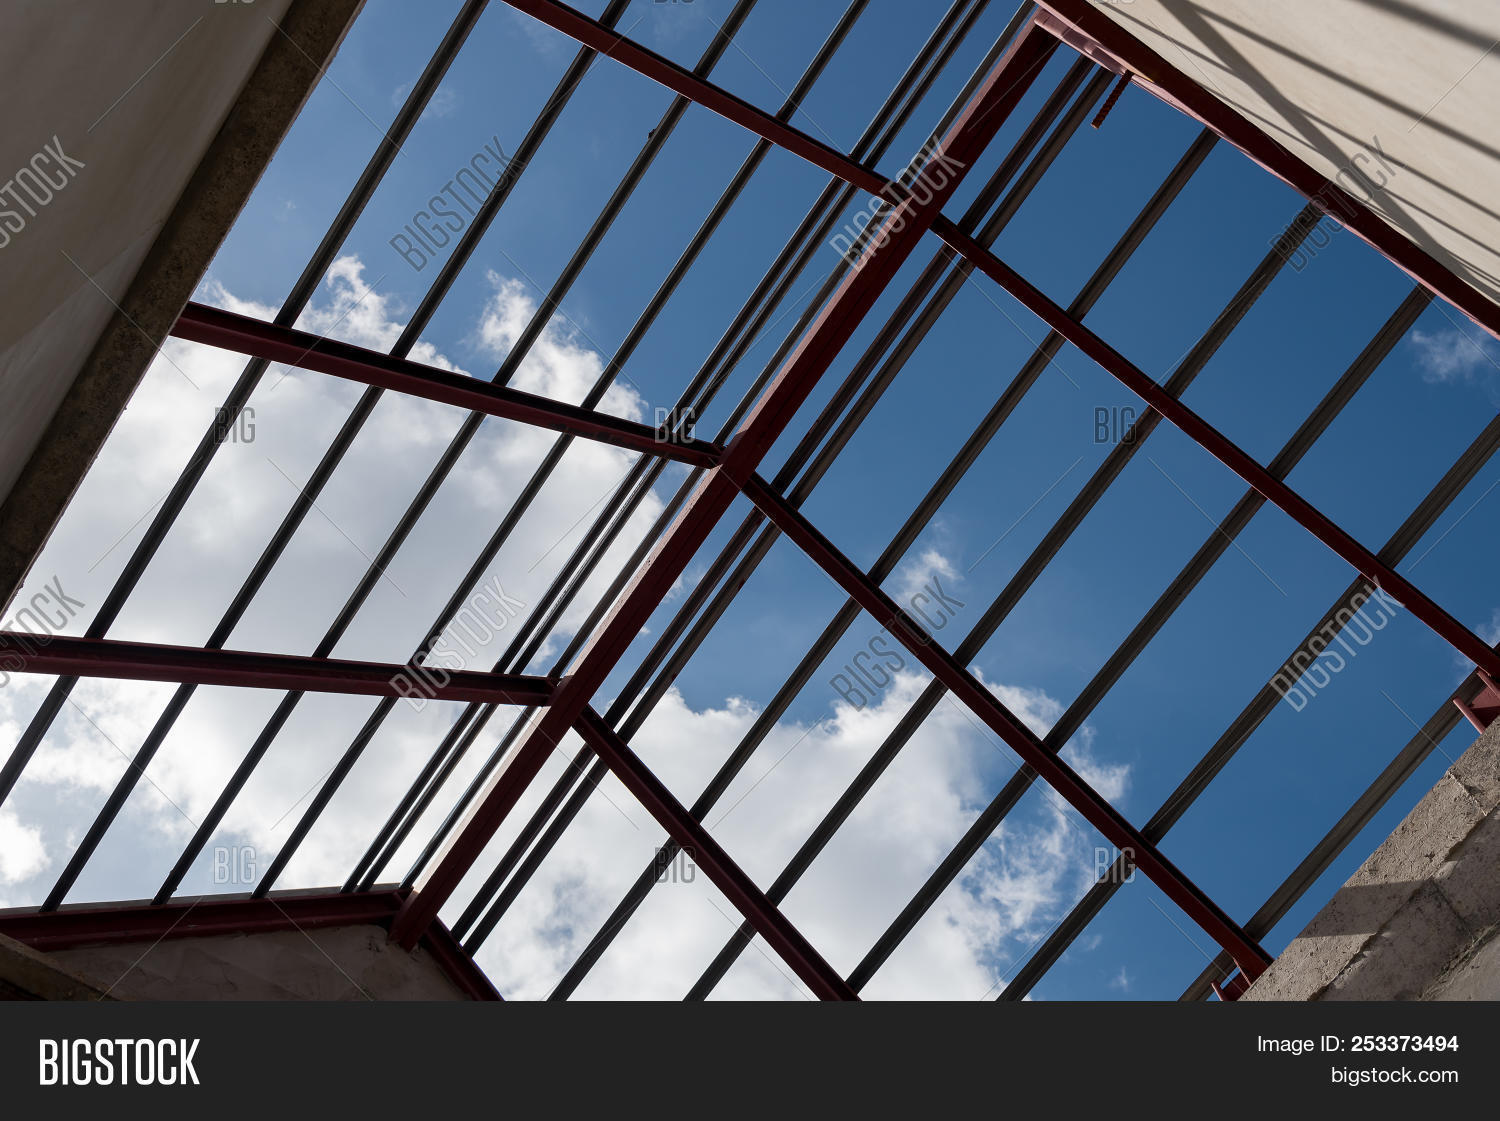 View Structural Steel Image Photo Free Trial Bigstock